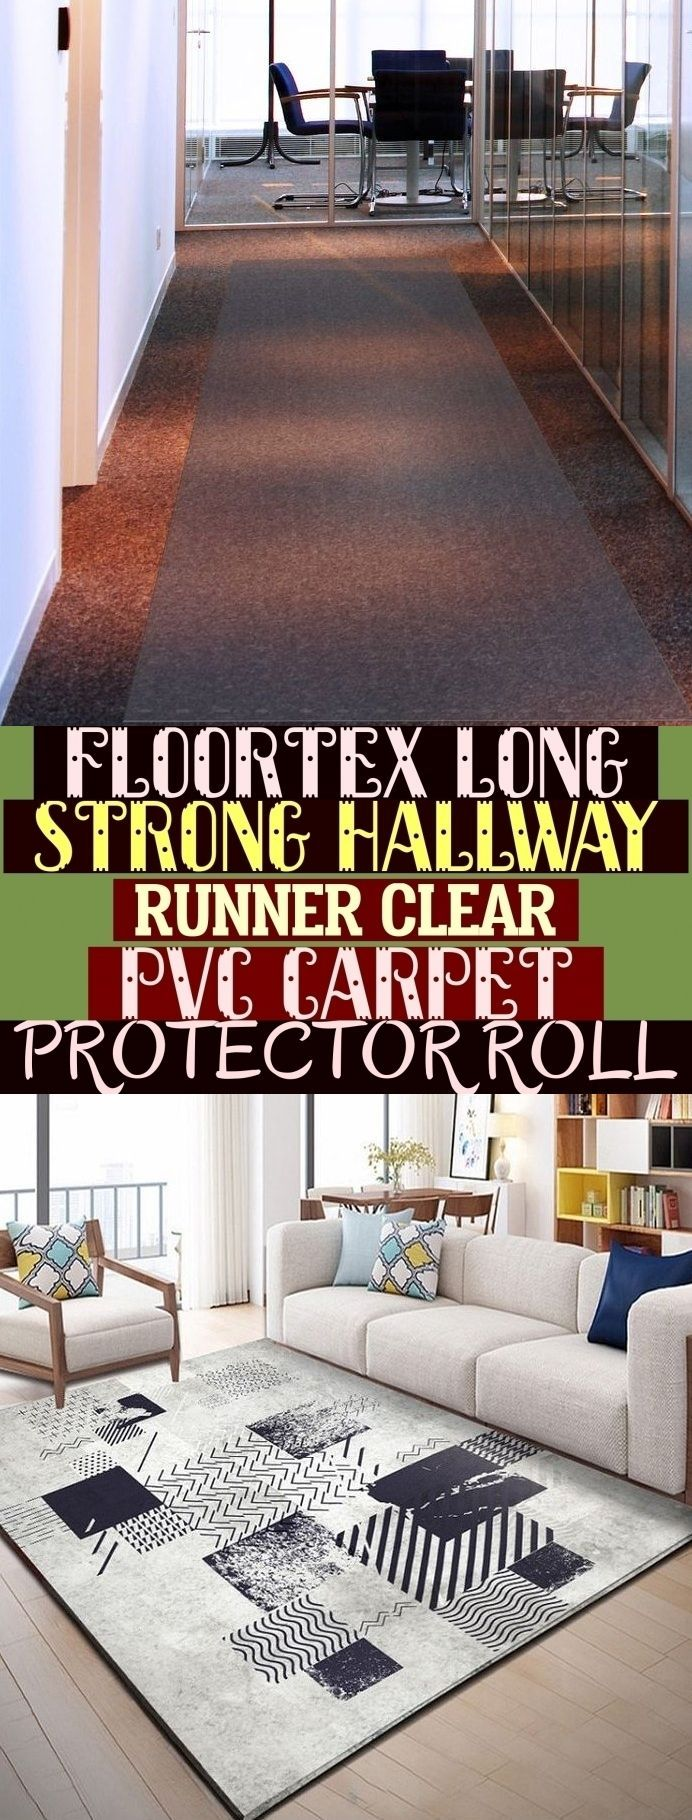 Floortex Long Strong Hallway Runner Clear Pvc Carpet Protector Roll Carpetfor Aubrie Nt Quos In 2020 Bohemian Living Rooms Indian Living Rooms Chic Living Room